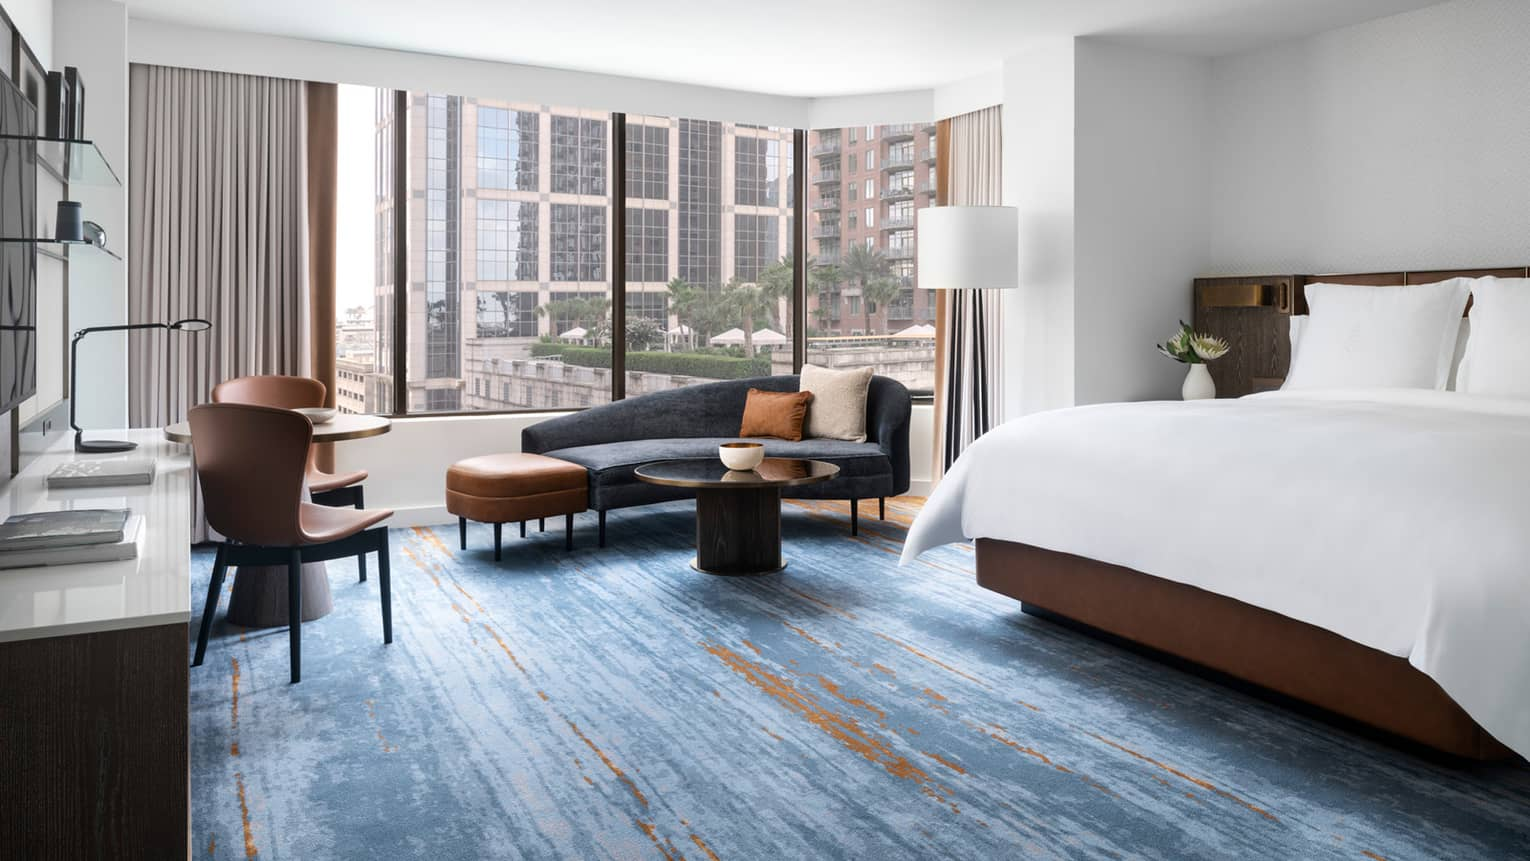 Hotel room with blue carpeting, king bed, dark blue chaise lounge, large windows